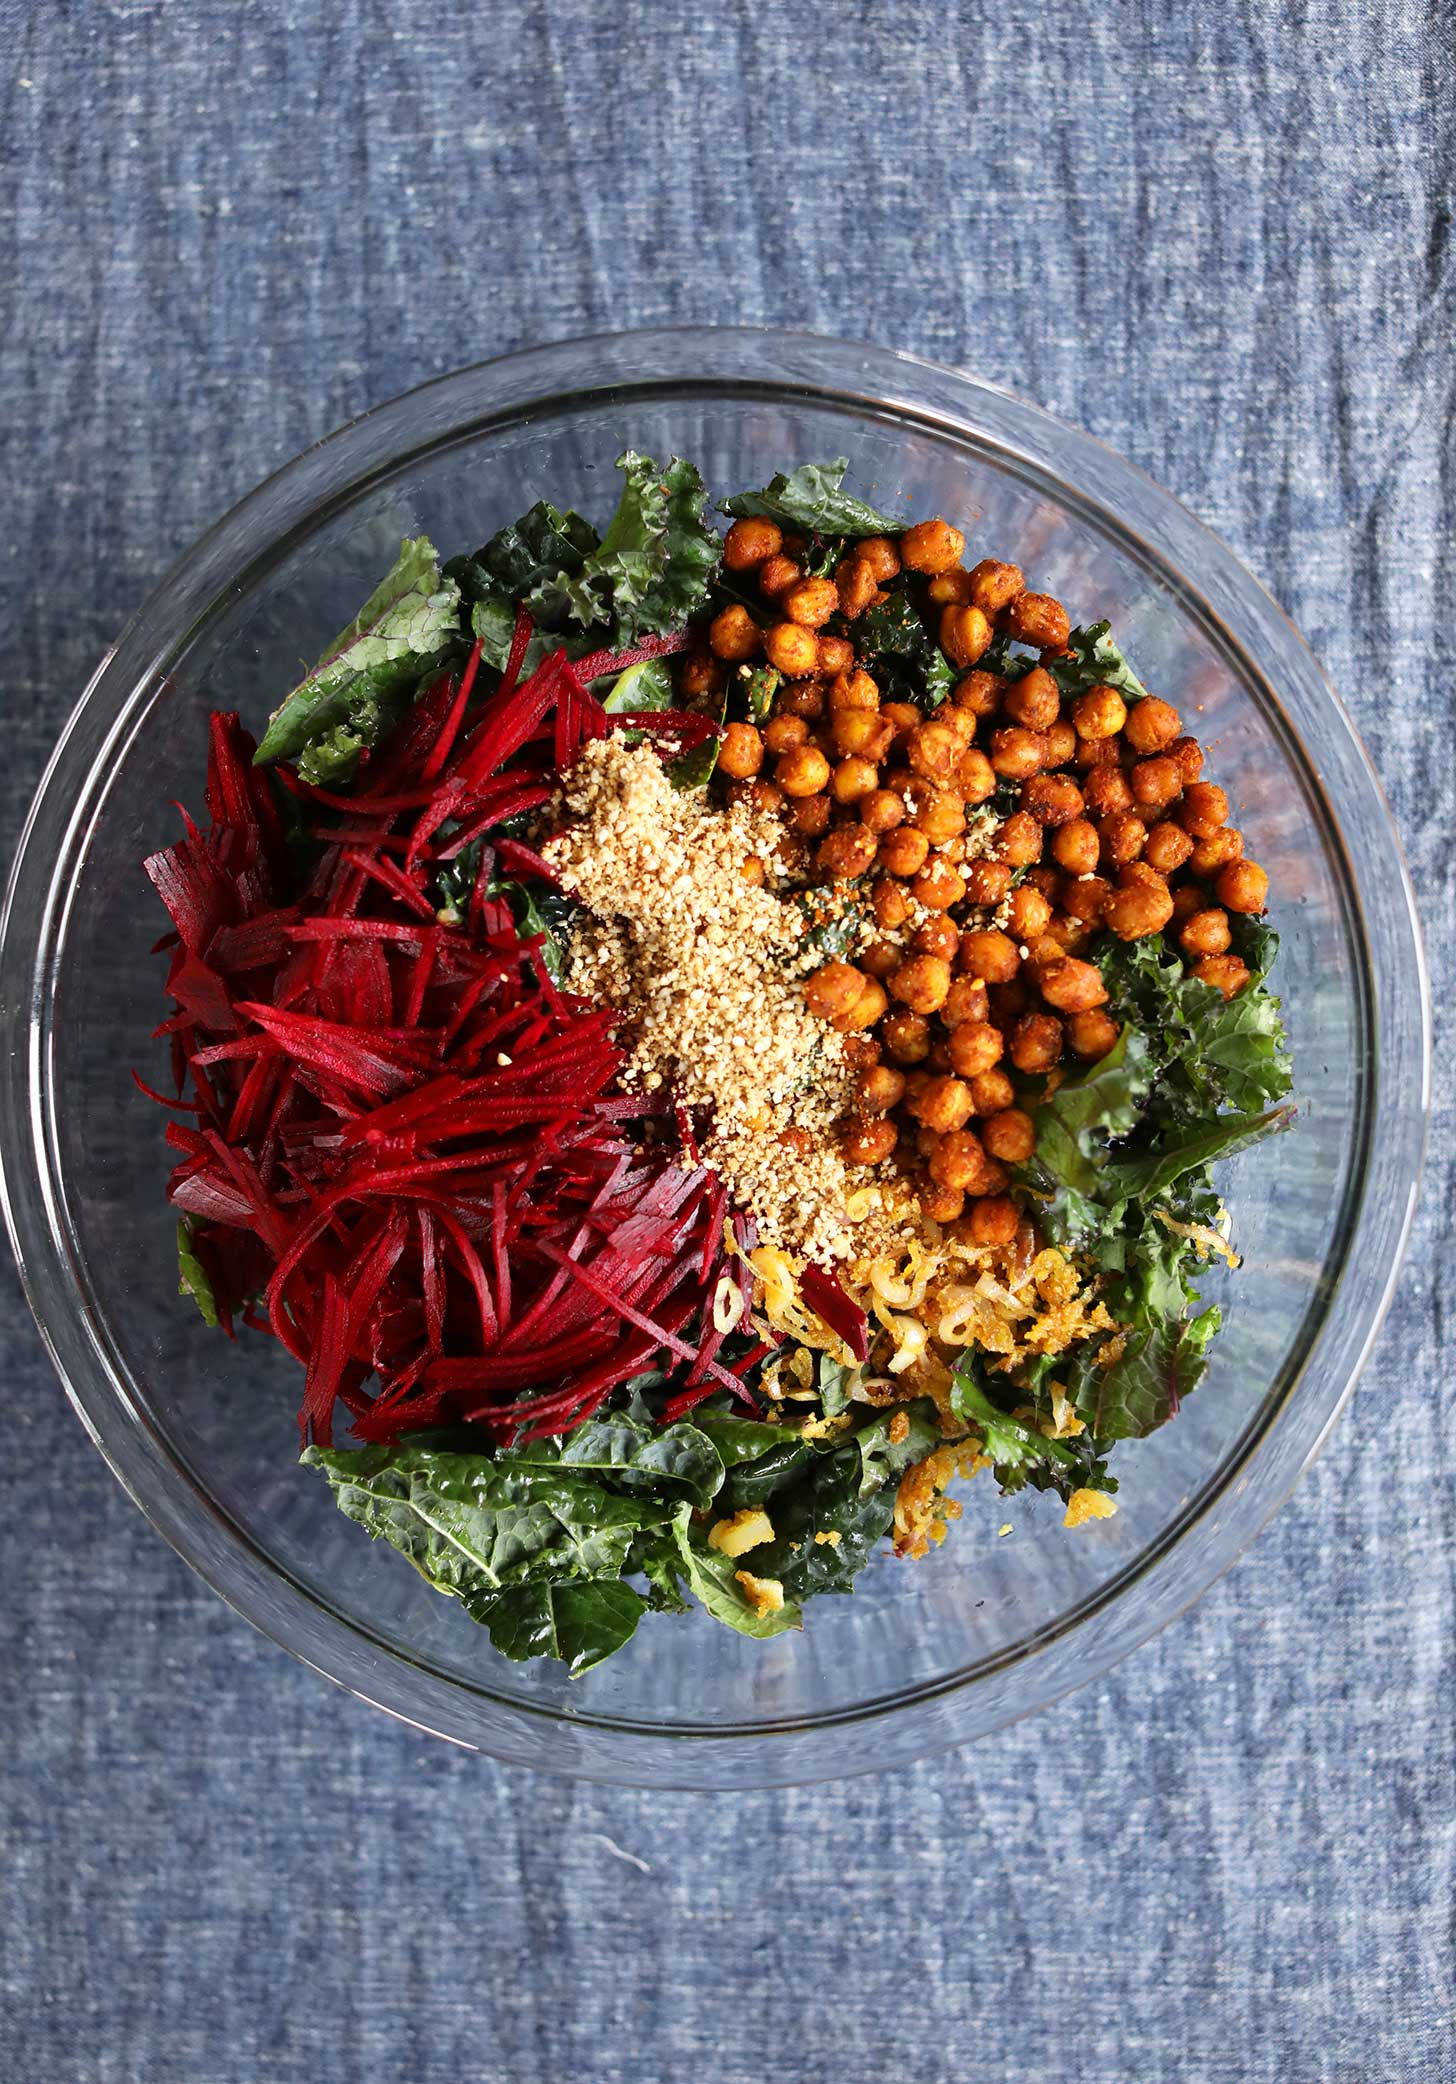 Beautiful bowl of kale, beets, onions, dukkah, and chickpeas